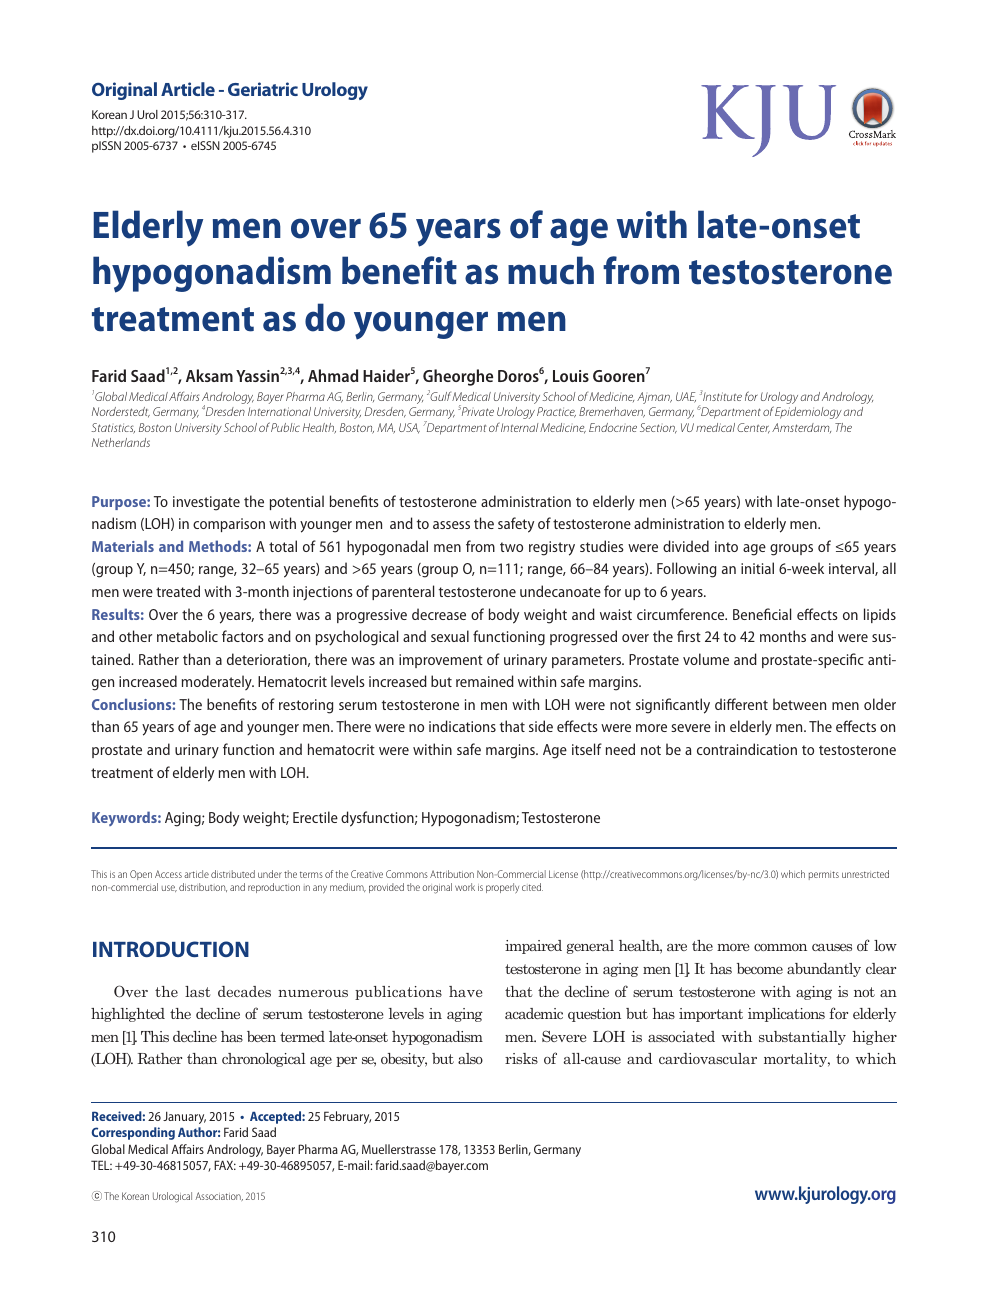 Elderly men over 65 years of age with late-onset